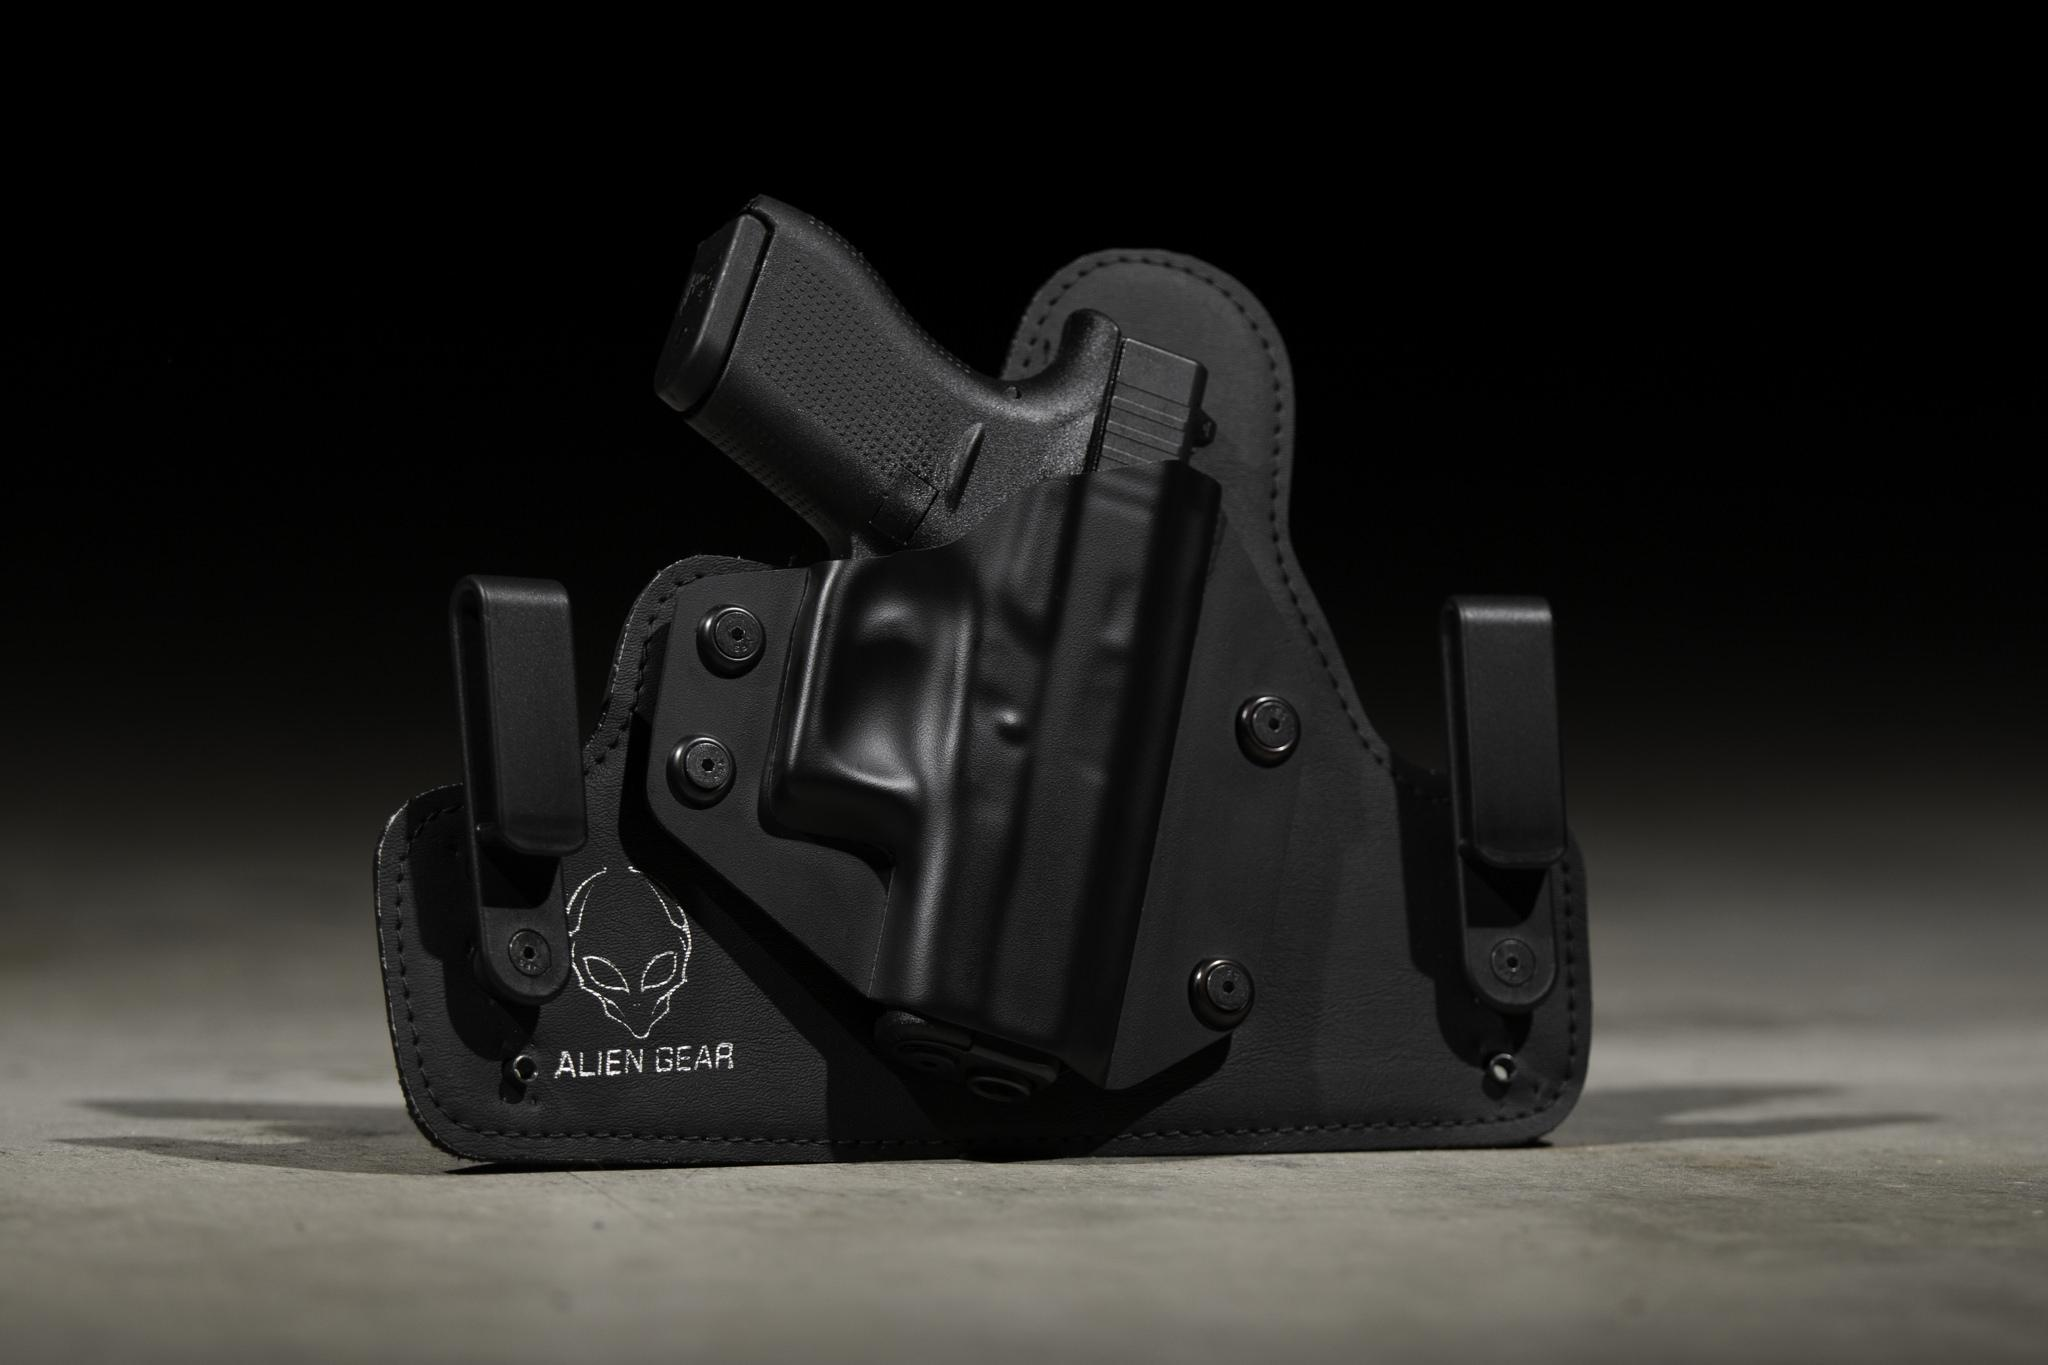 a handgun by Glock® inside a concealment holster